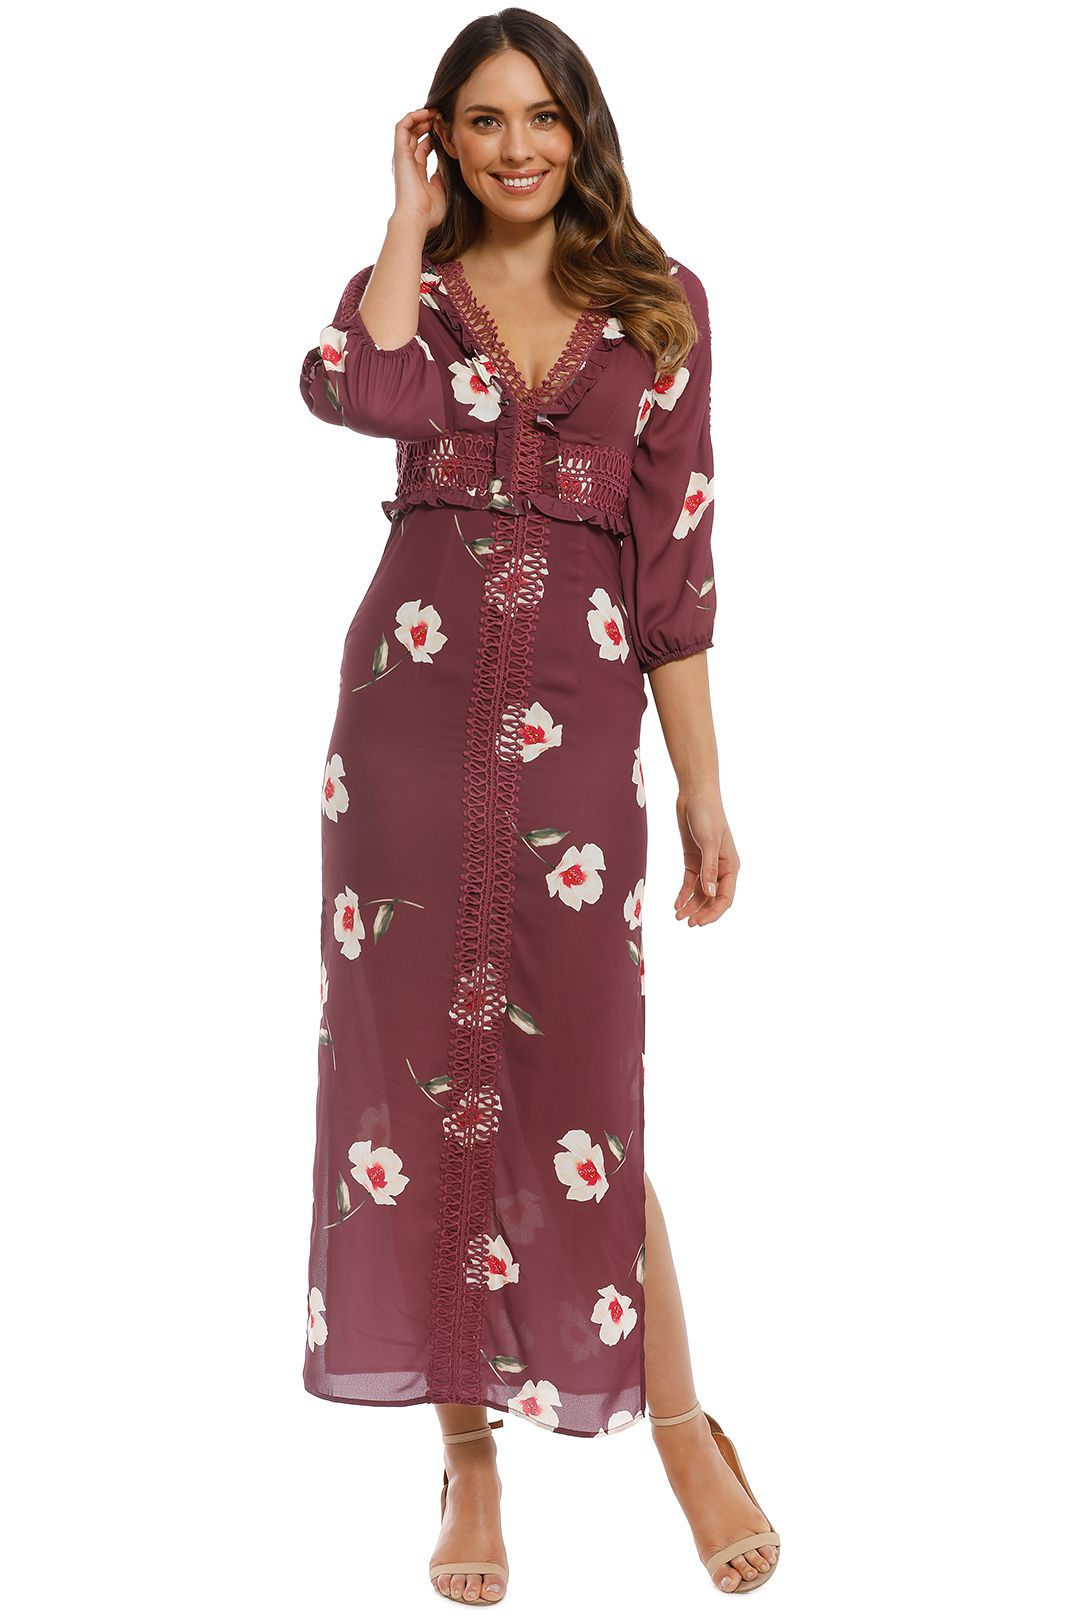 We Are Kindred - Madeliene Ladder Maxi Dress - Plum - Front